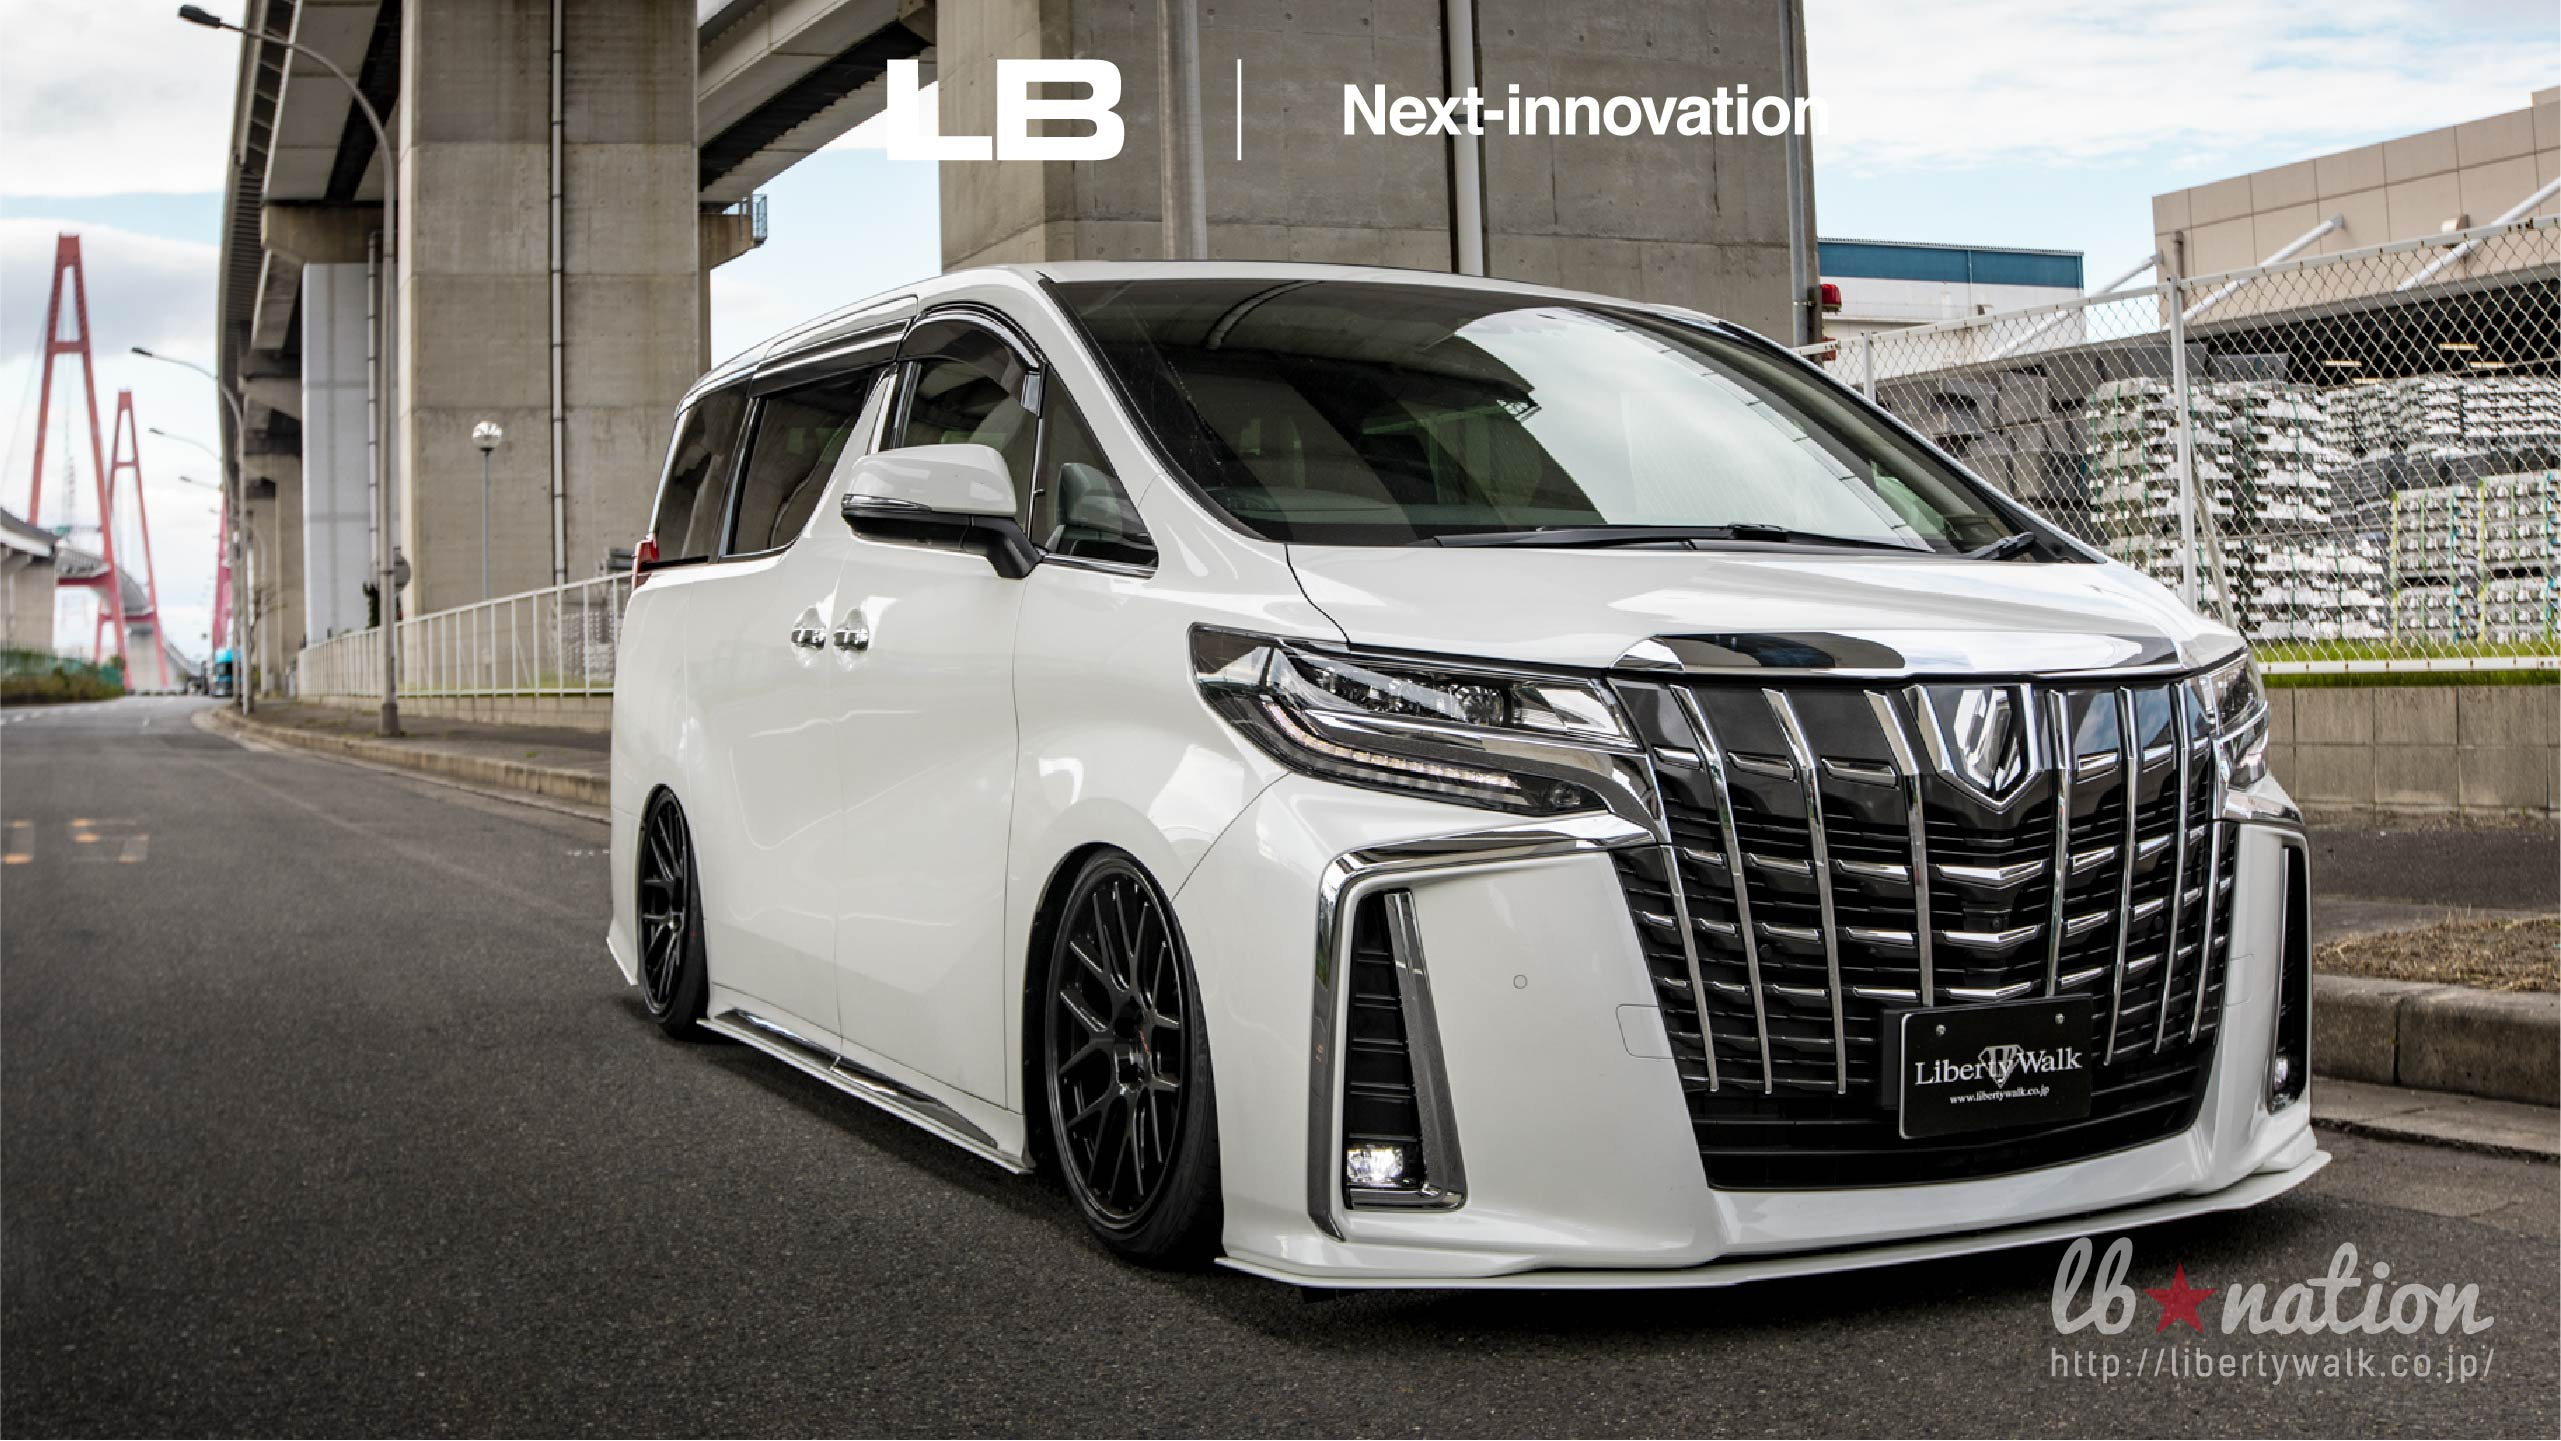 19-50 lb★nation × Next innovation TOYOTA 30ALPHARD